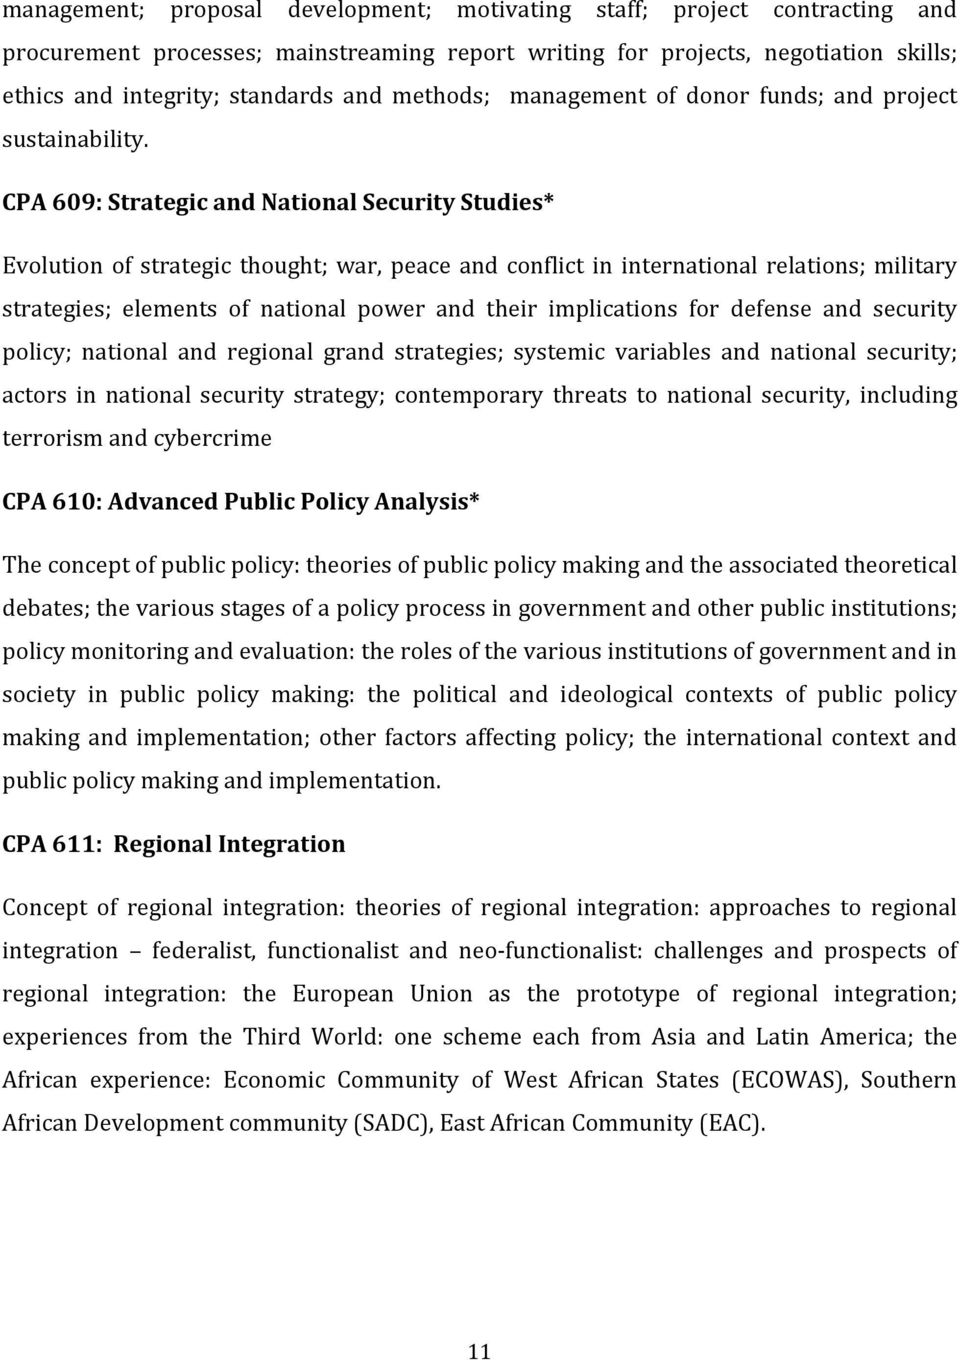 CPA 609: Strategic and National Security Studies* Evolution of strategic thought; war, peace and conflict in international relations; military strategies; elements of national power and their